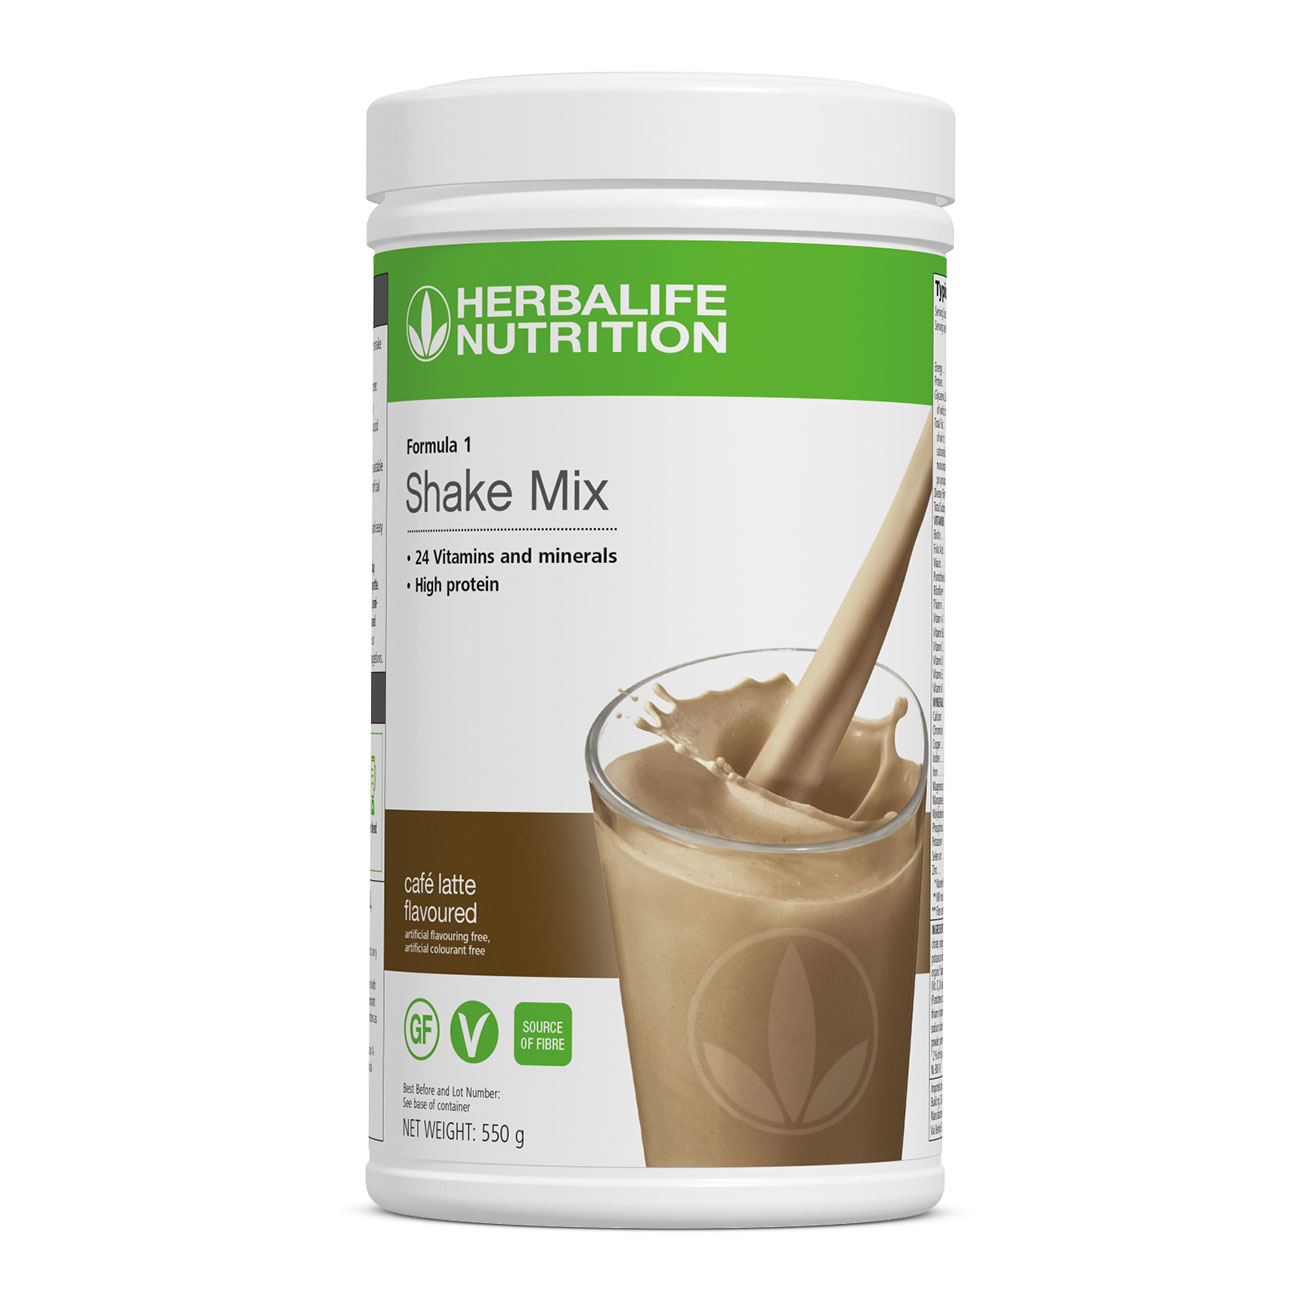 Formula 1 Shake Mix Café Latte Flavoured product shot